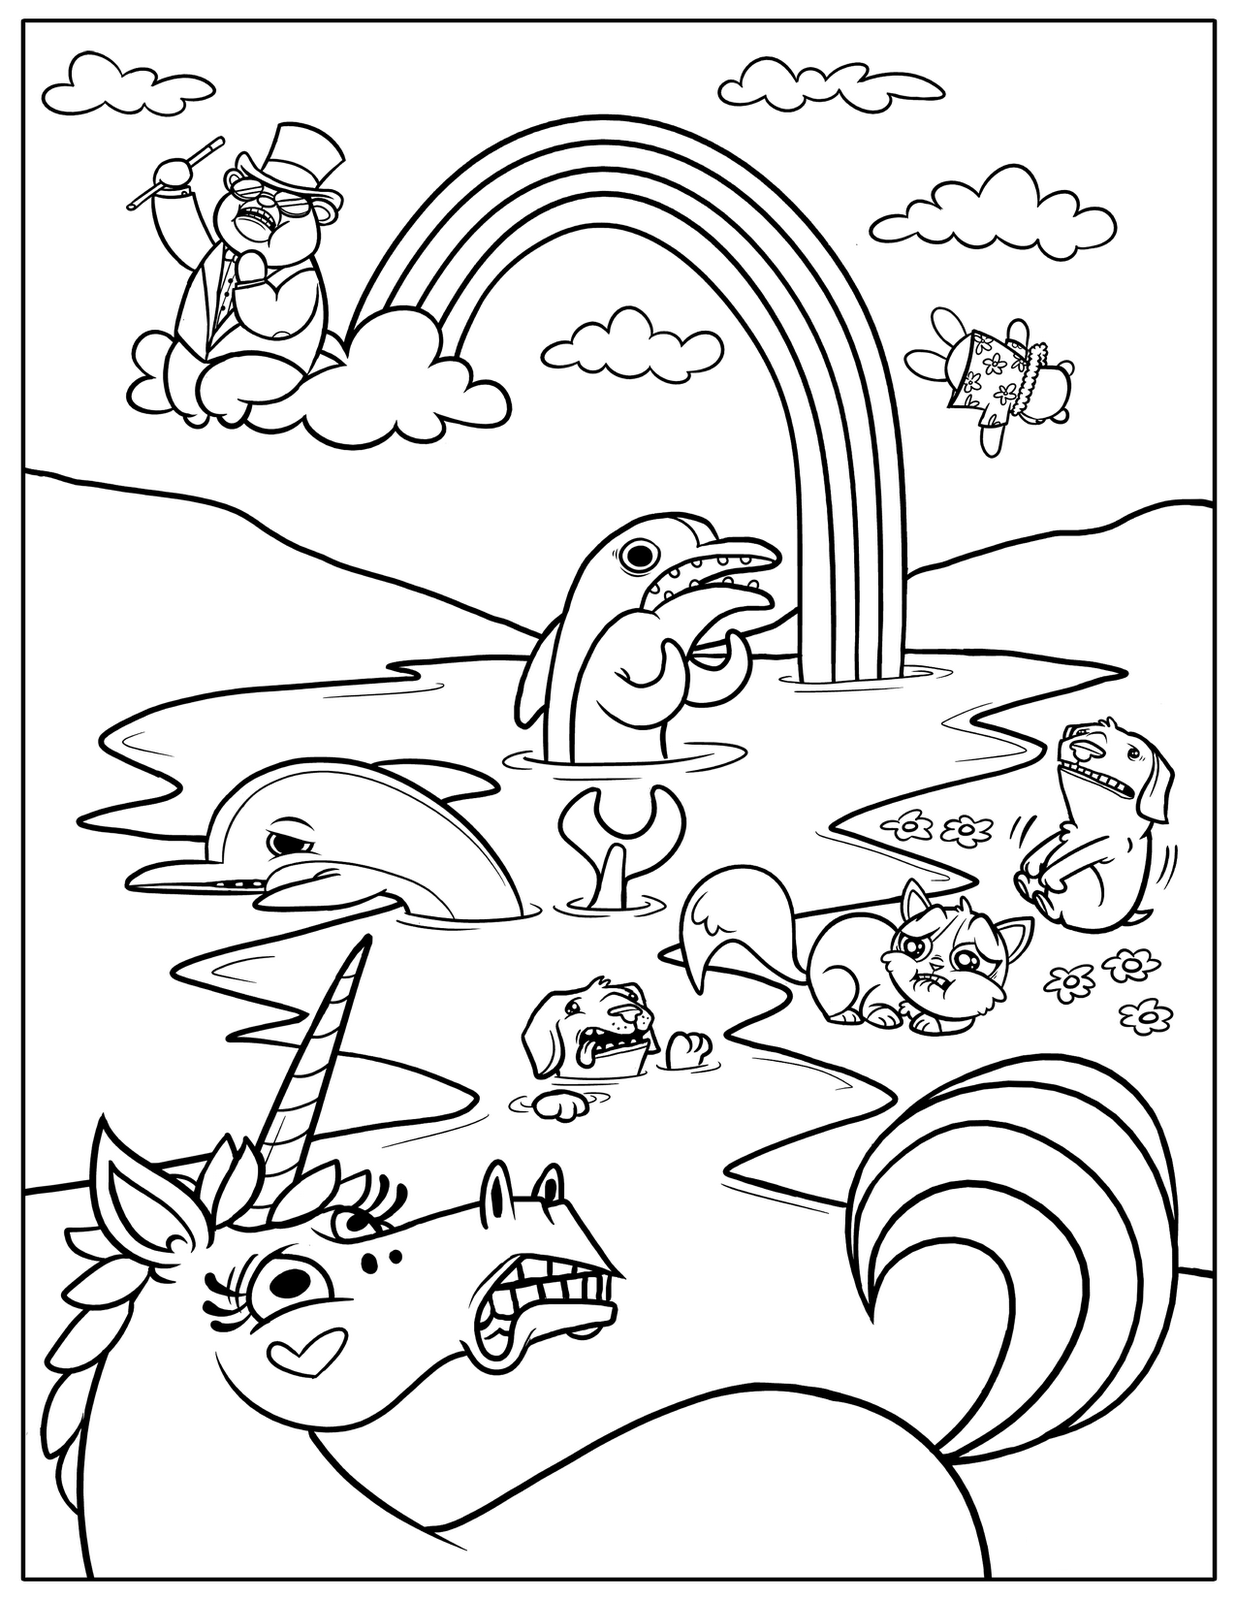 rainbow coloring pages kids printable - Coloring Pages For Kids Printable